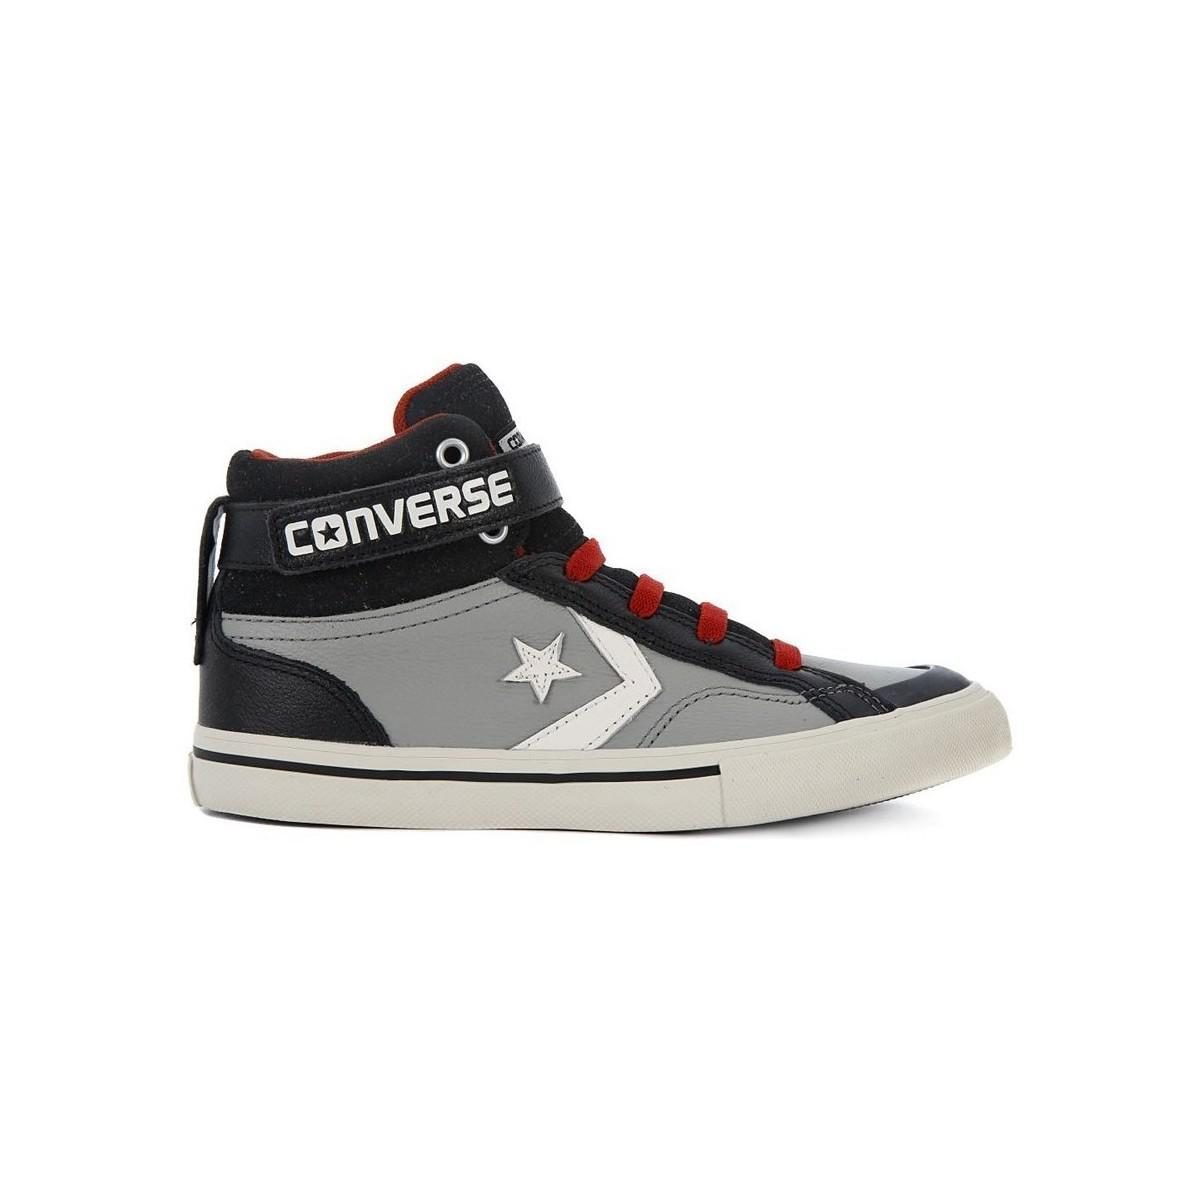 d34ef704a815 Converse Pro Blaze Strap Women s Shoes (high-top Trainers) In Black ...